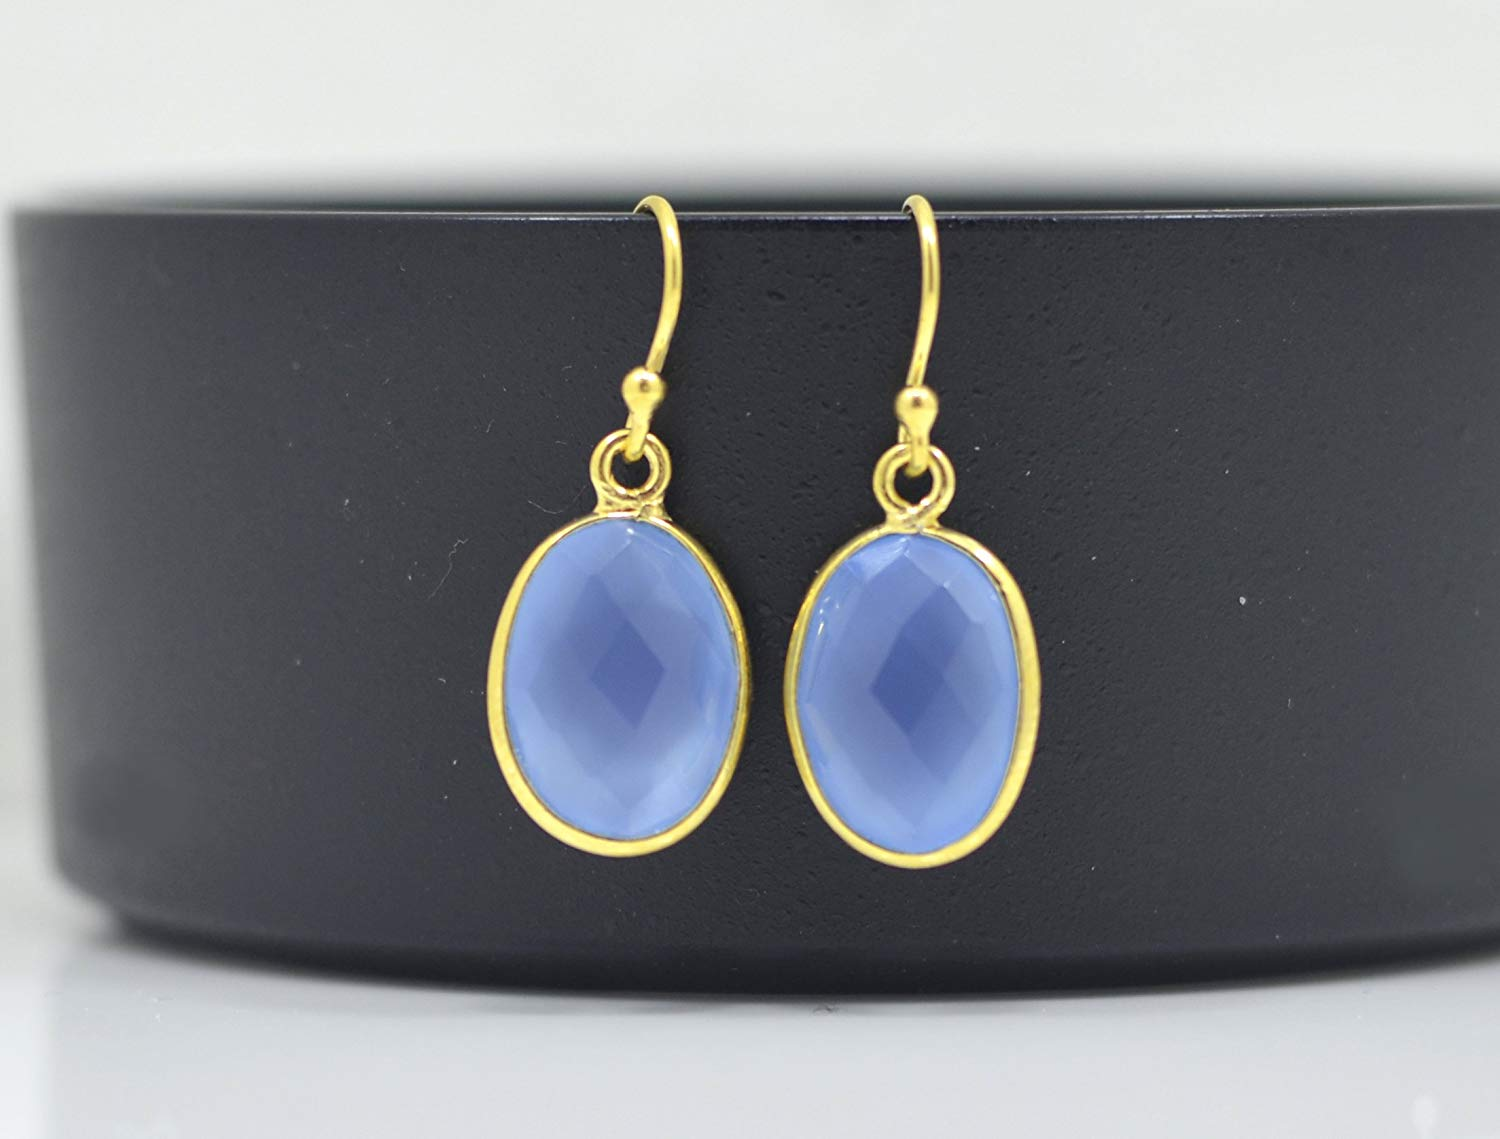 4ca5d96fa Get Quotations · Oval Blue Chalcedony Earrings Gold, Blue Chalcedony  Earrings Silver, Blue Chalcedony Earrings Sterling,